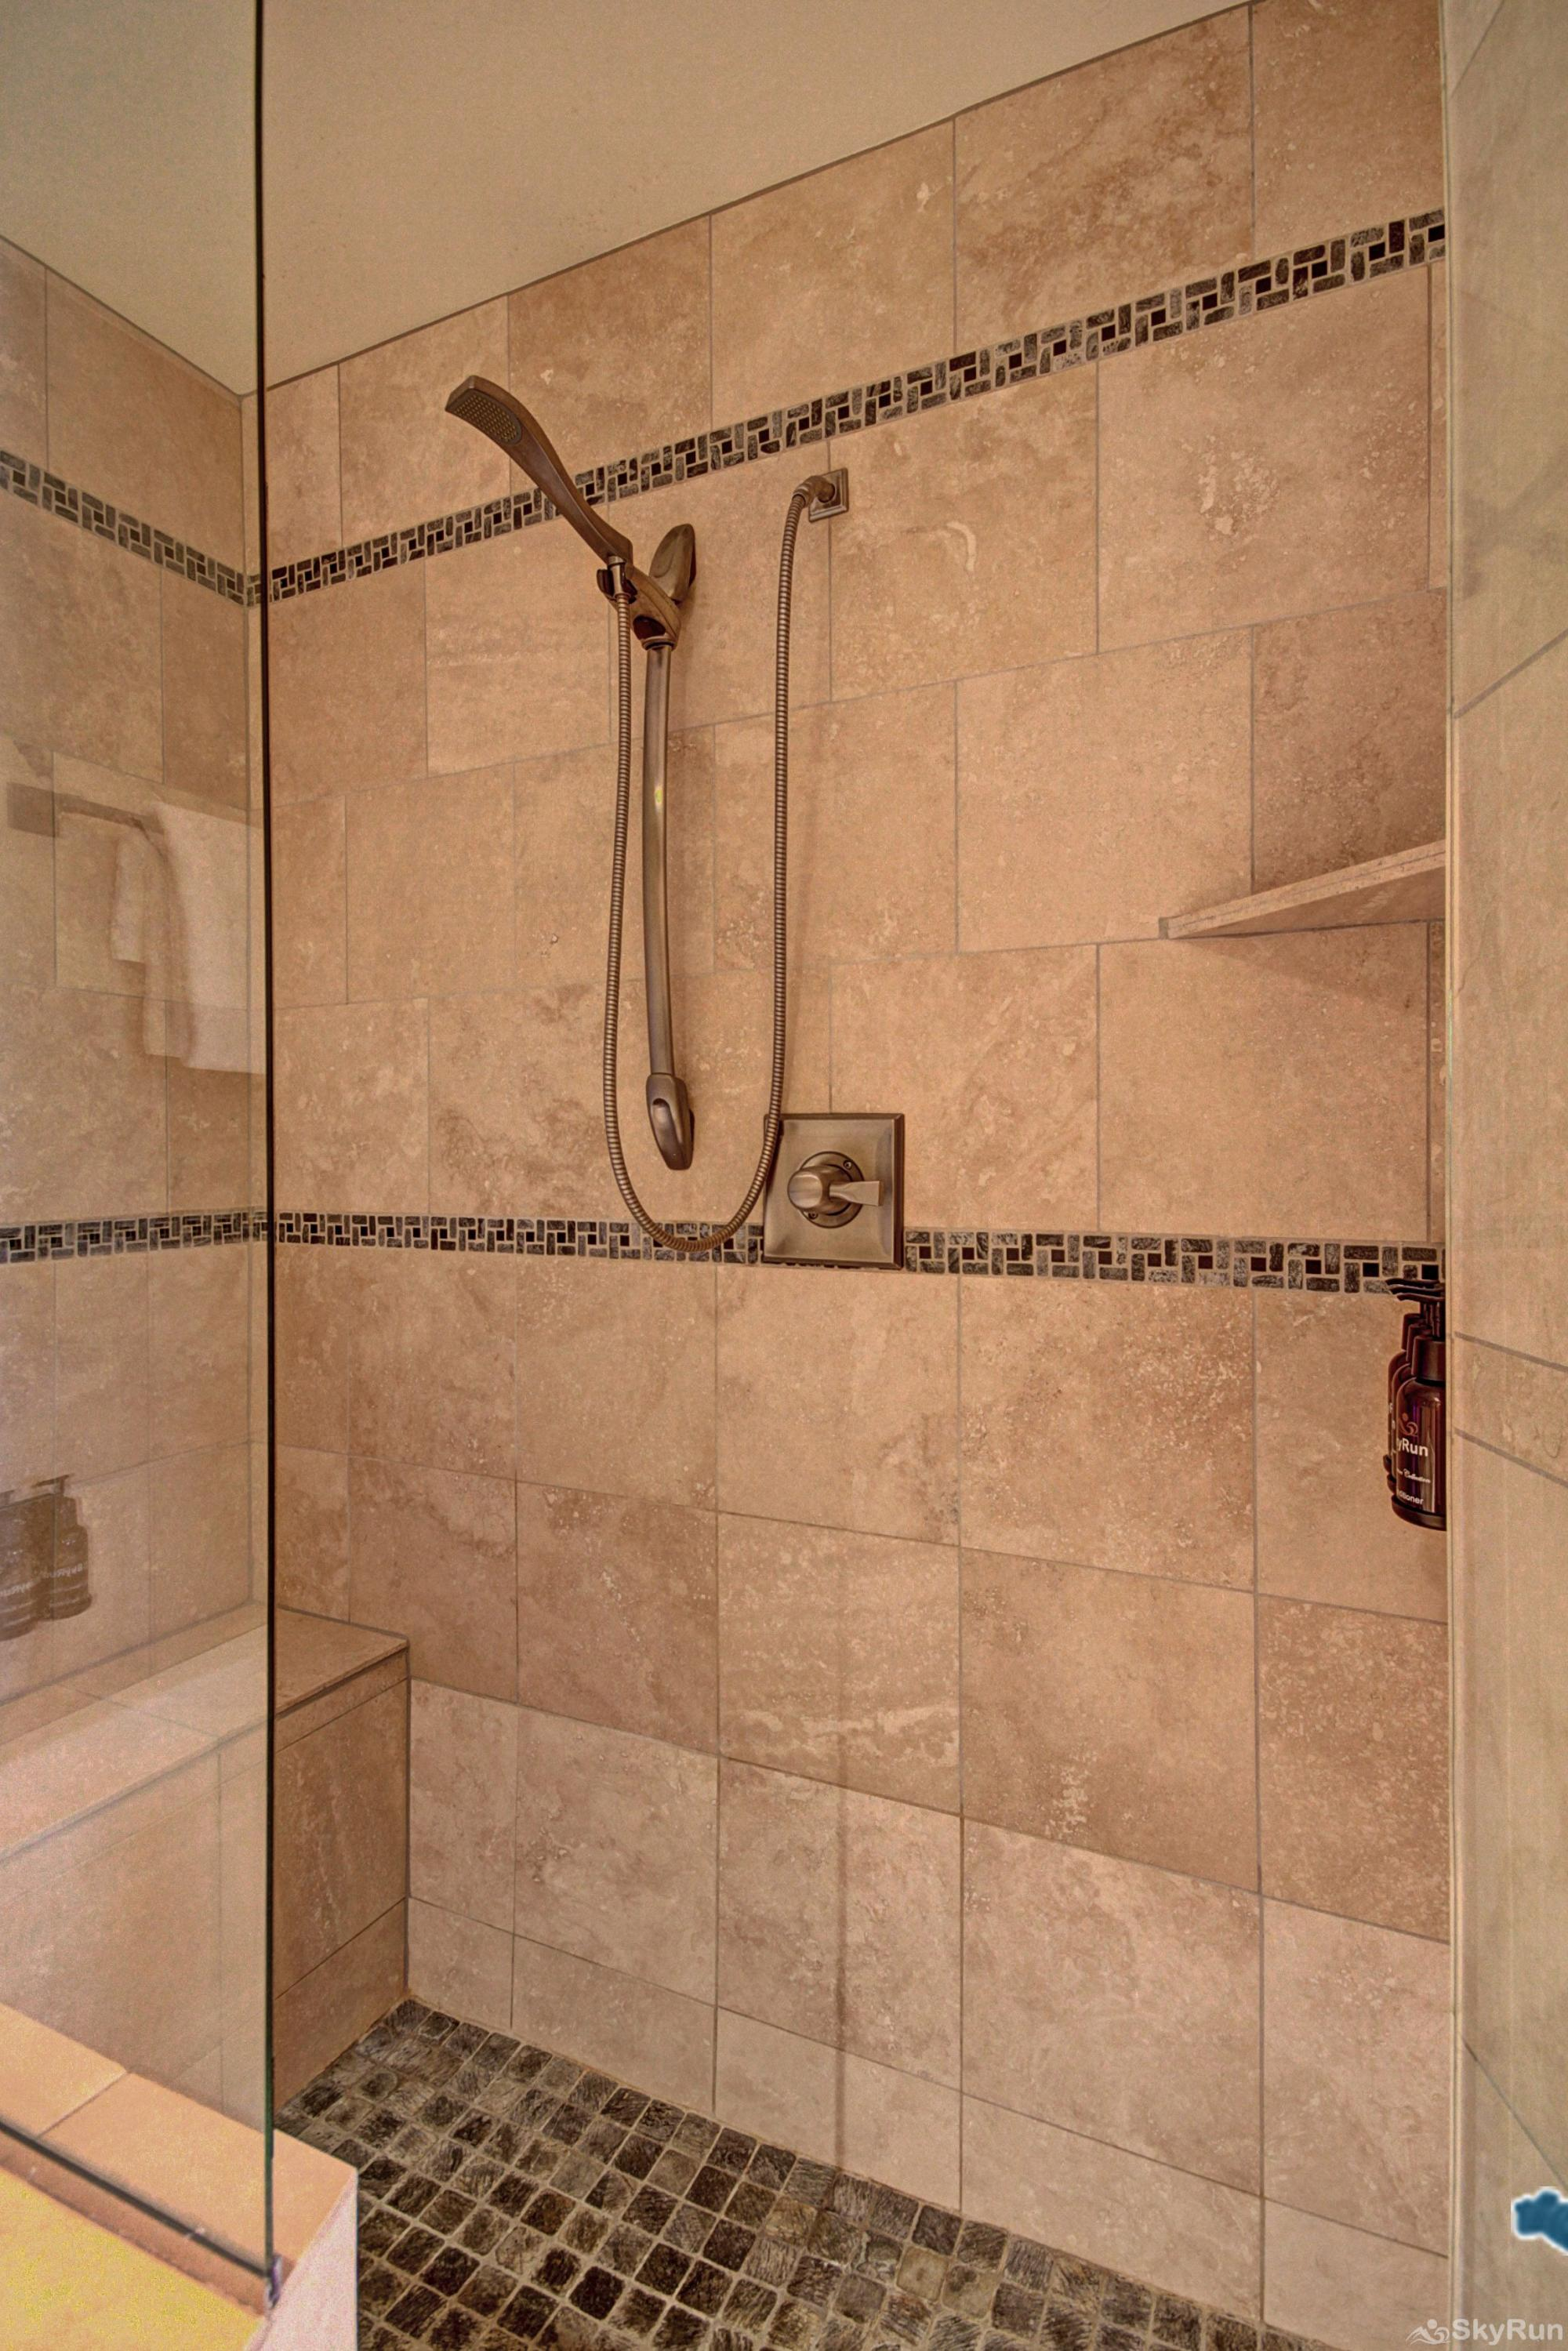 B202 WaterTower Place 2BR 3BA Over sized walk in shower